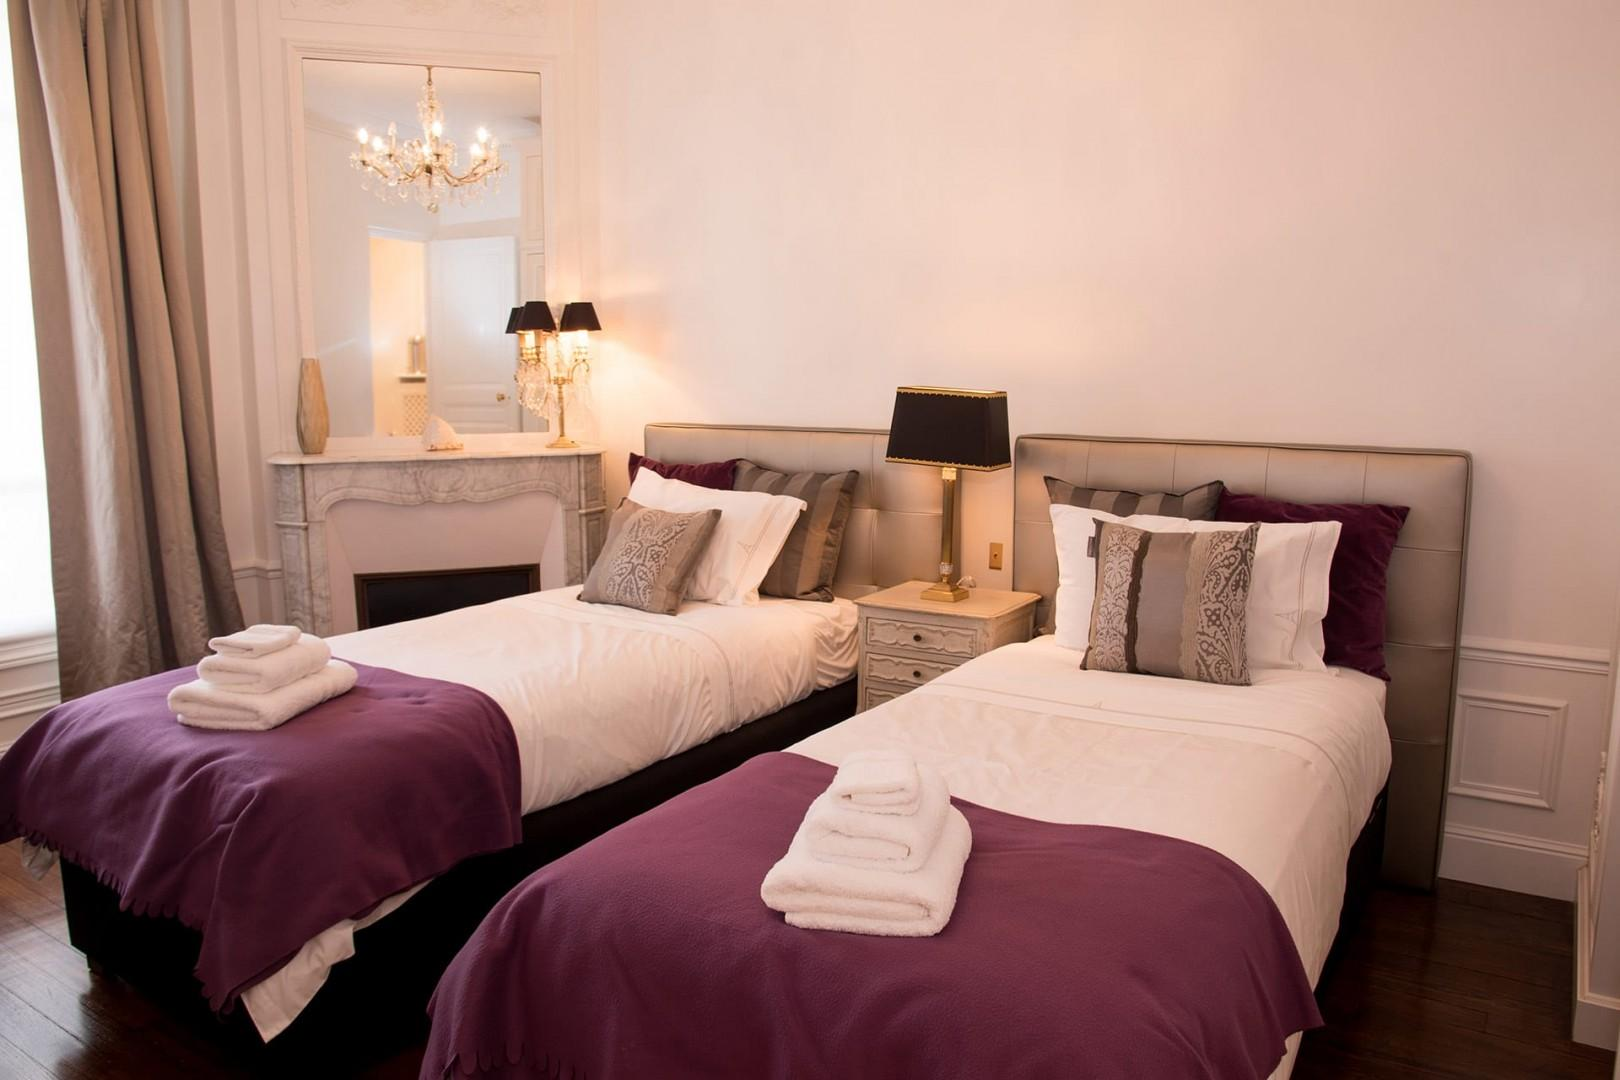 Bedroom 2 has two comfortable beds and a private en suite bathroom.